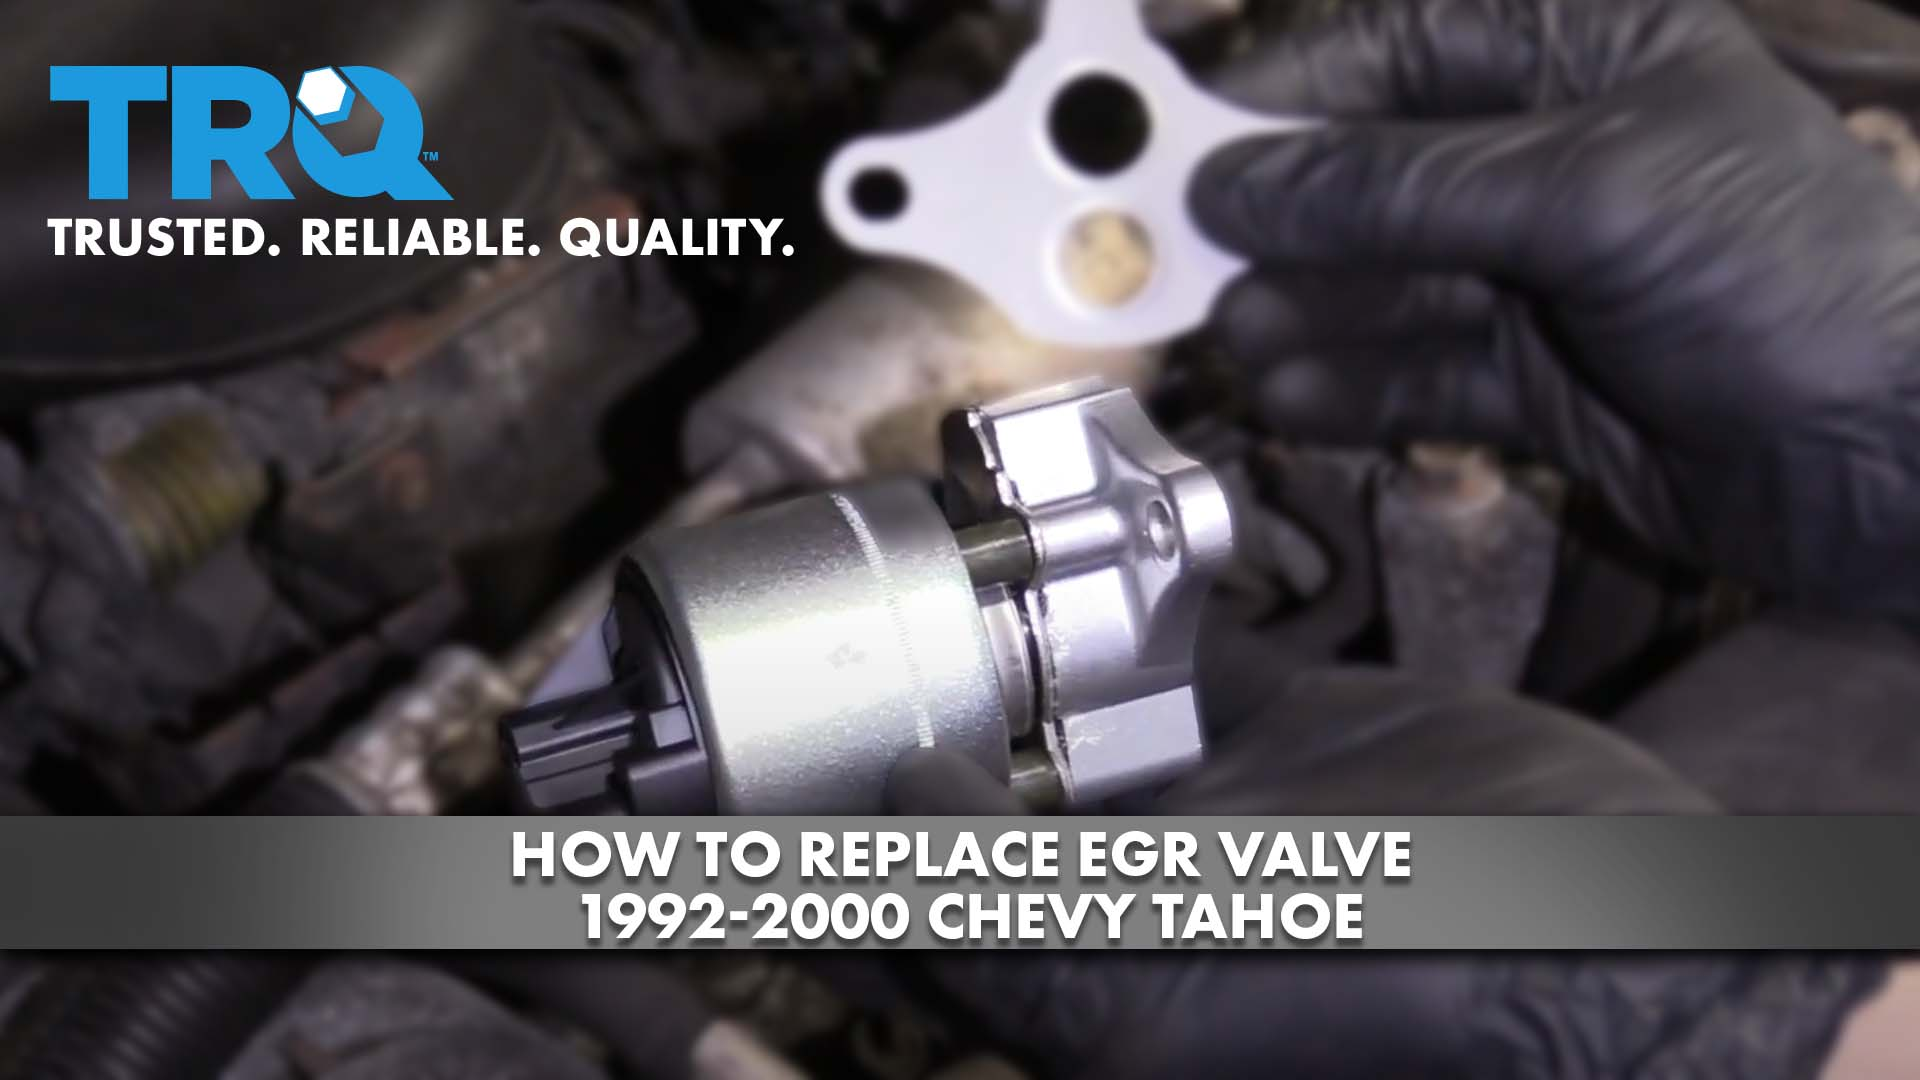 How To Replace EGR Valve 1992-2000 Chevy Tahoe